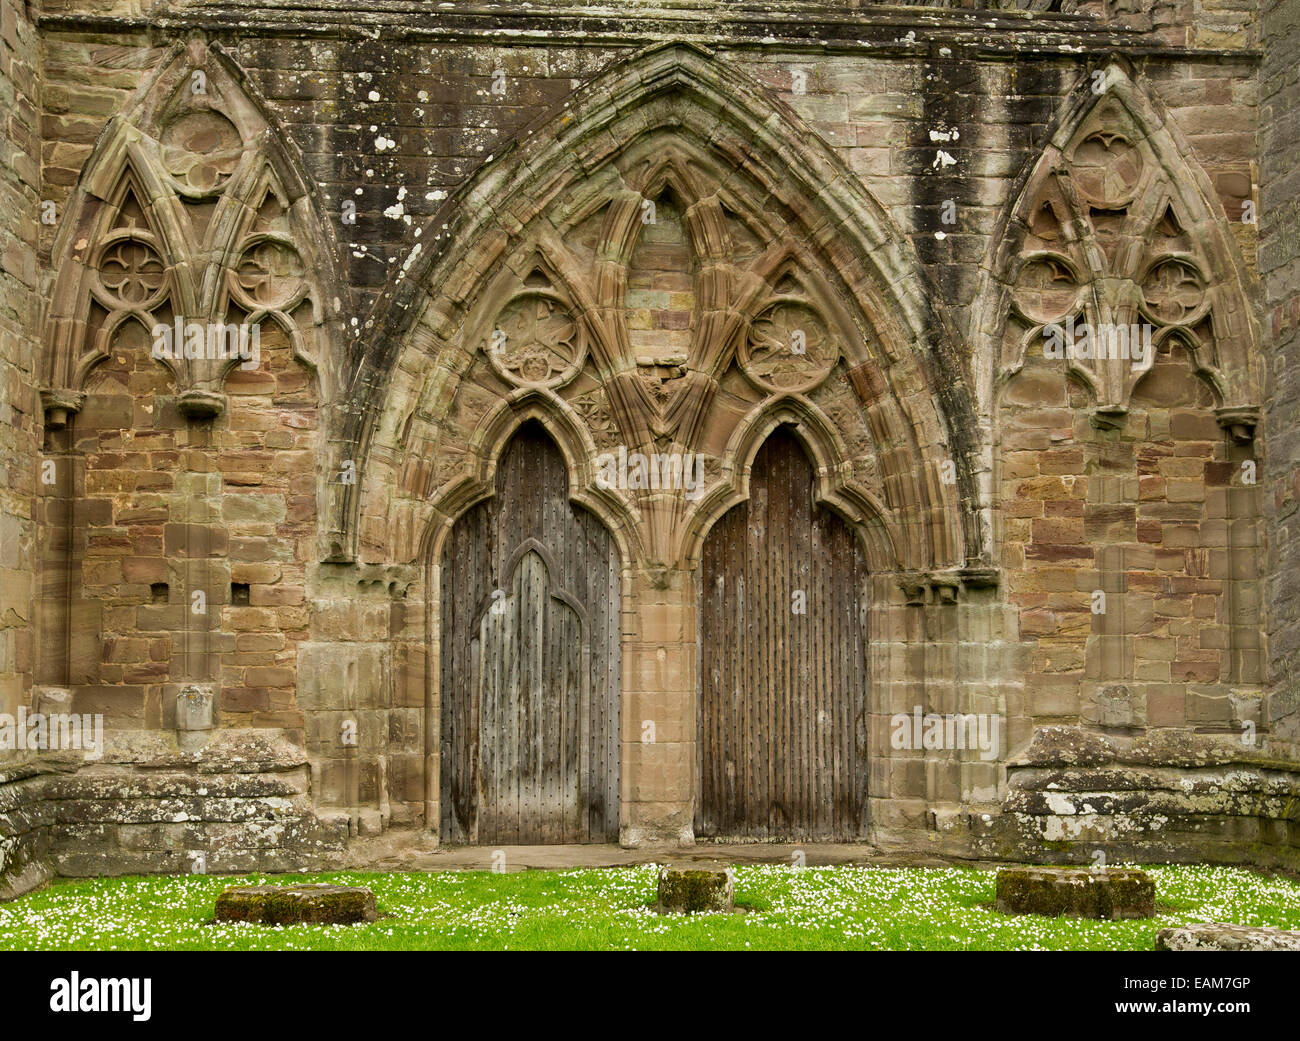 Spectacular Doorway Wall Of Ruined 12th Century Tintern Abbey With